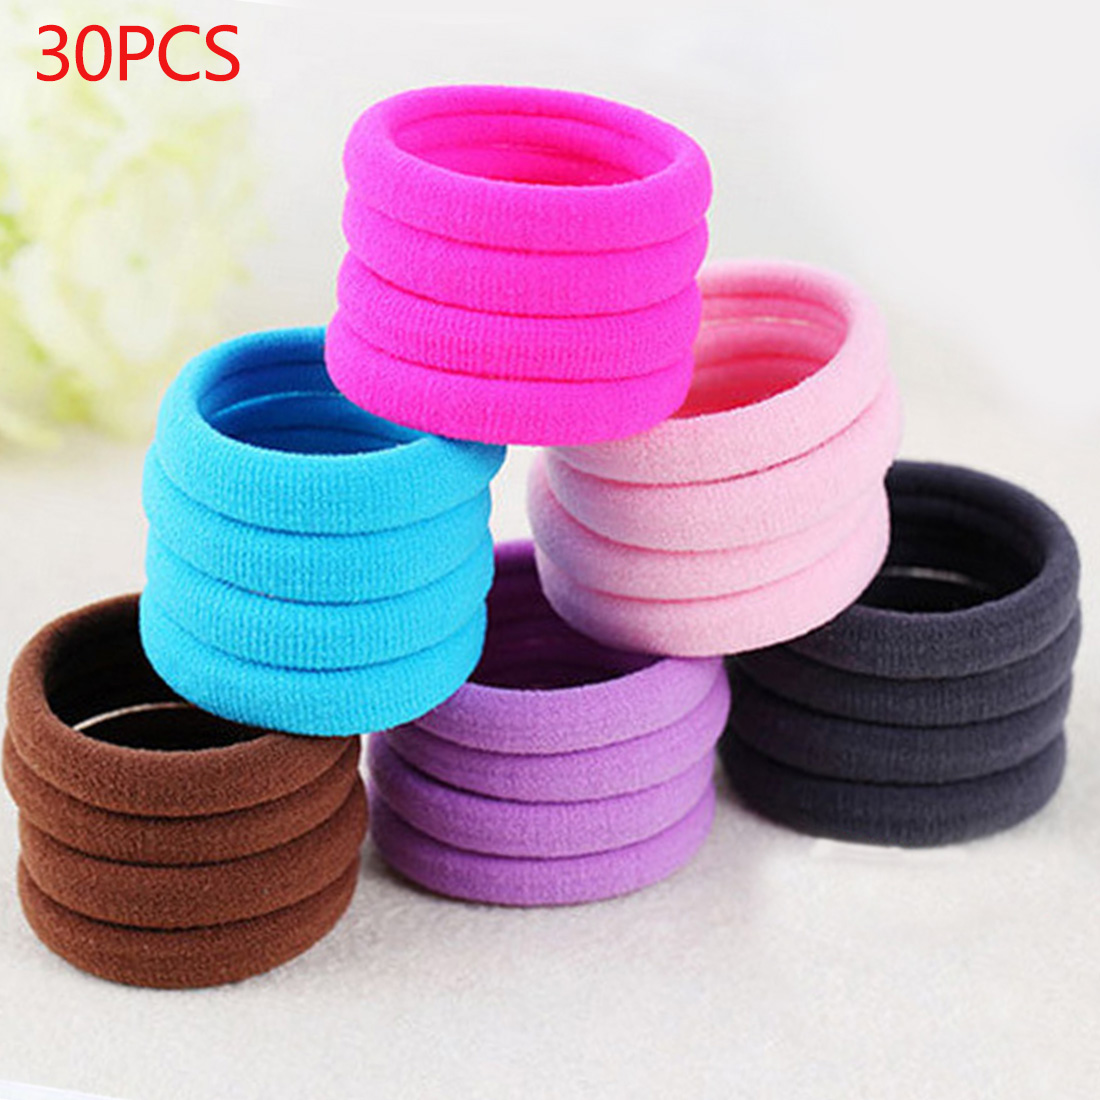 30pcs/lot Candy Color Girls Seamless Gum Elastic Ponytail Holders Rubber Rope Hair Accessories Band Girls Hair Rings